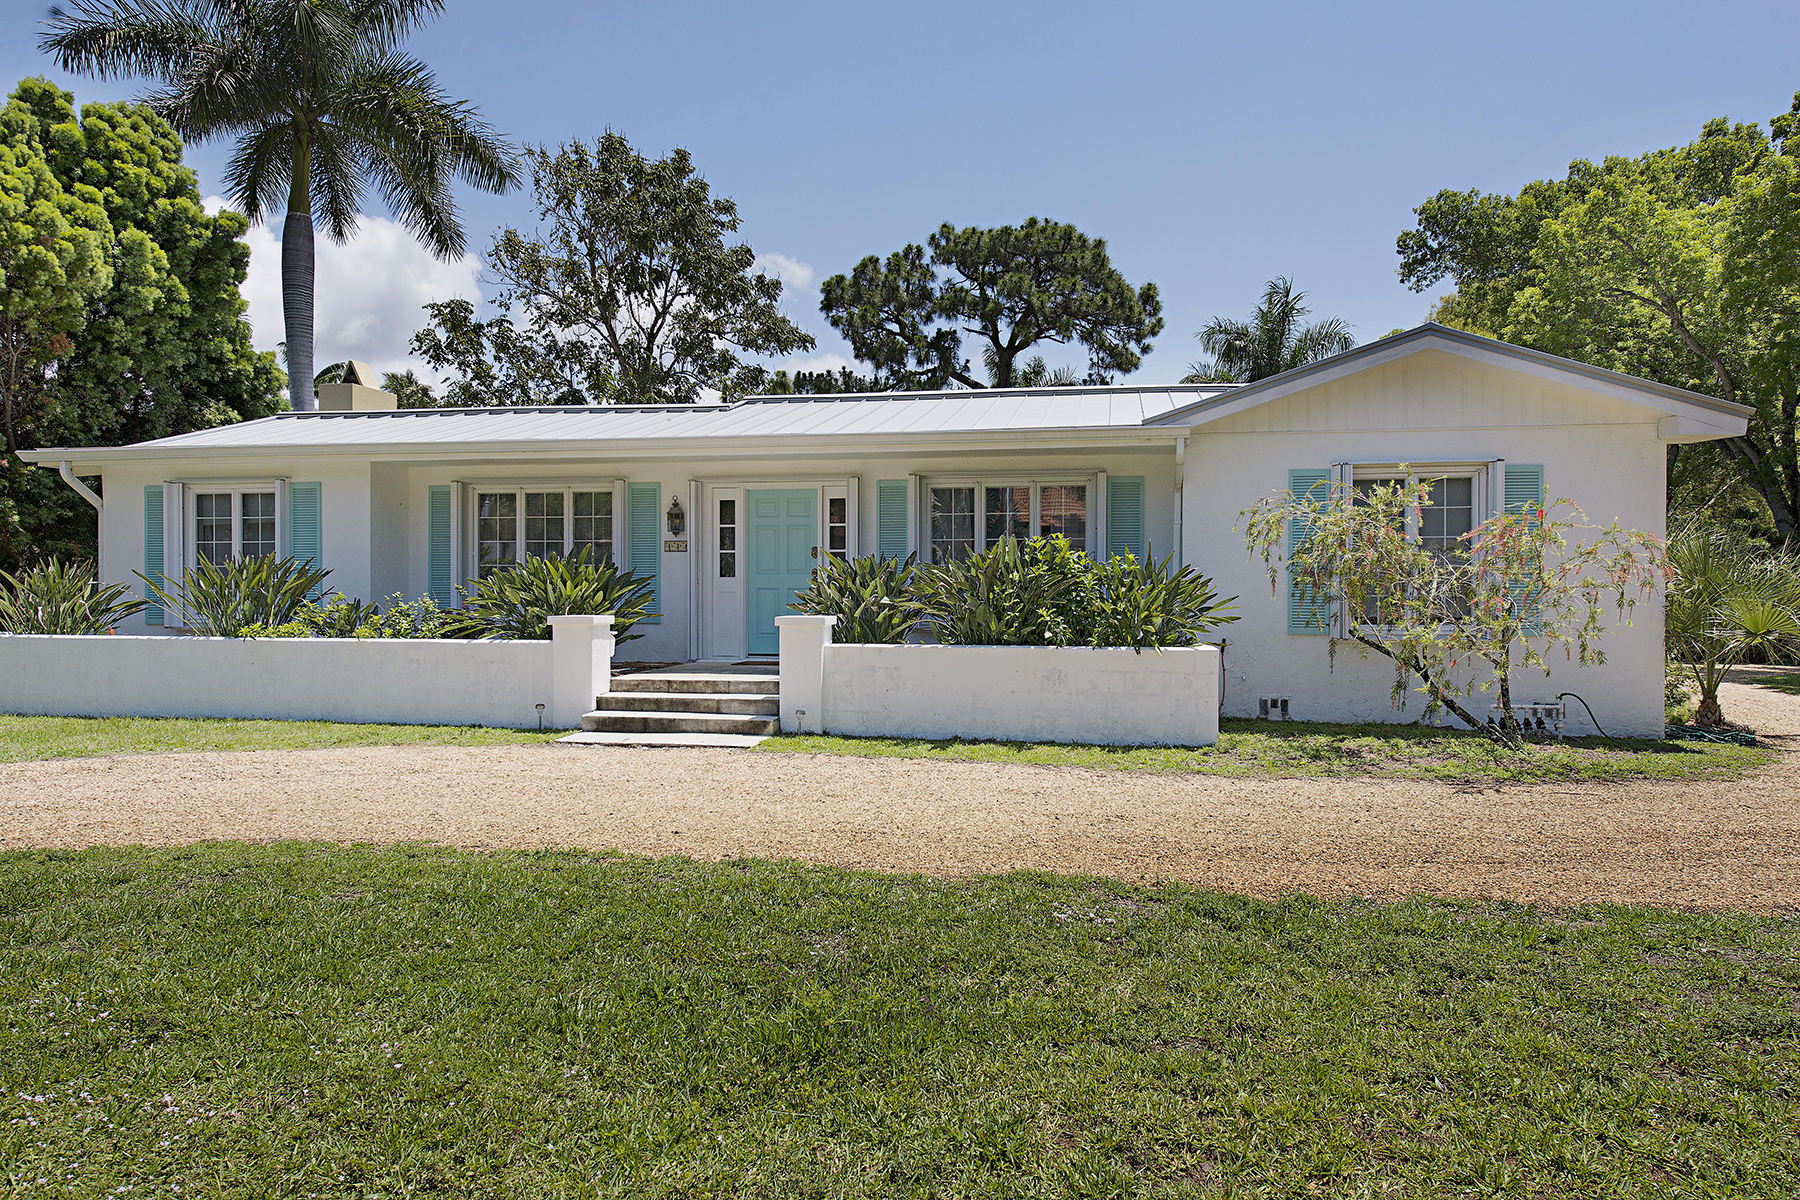 Single Family Home for Rent at OLD NAPLES - OLD NAPLES 116 3rd St N, Naples, Florida 34102 United States